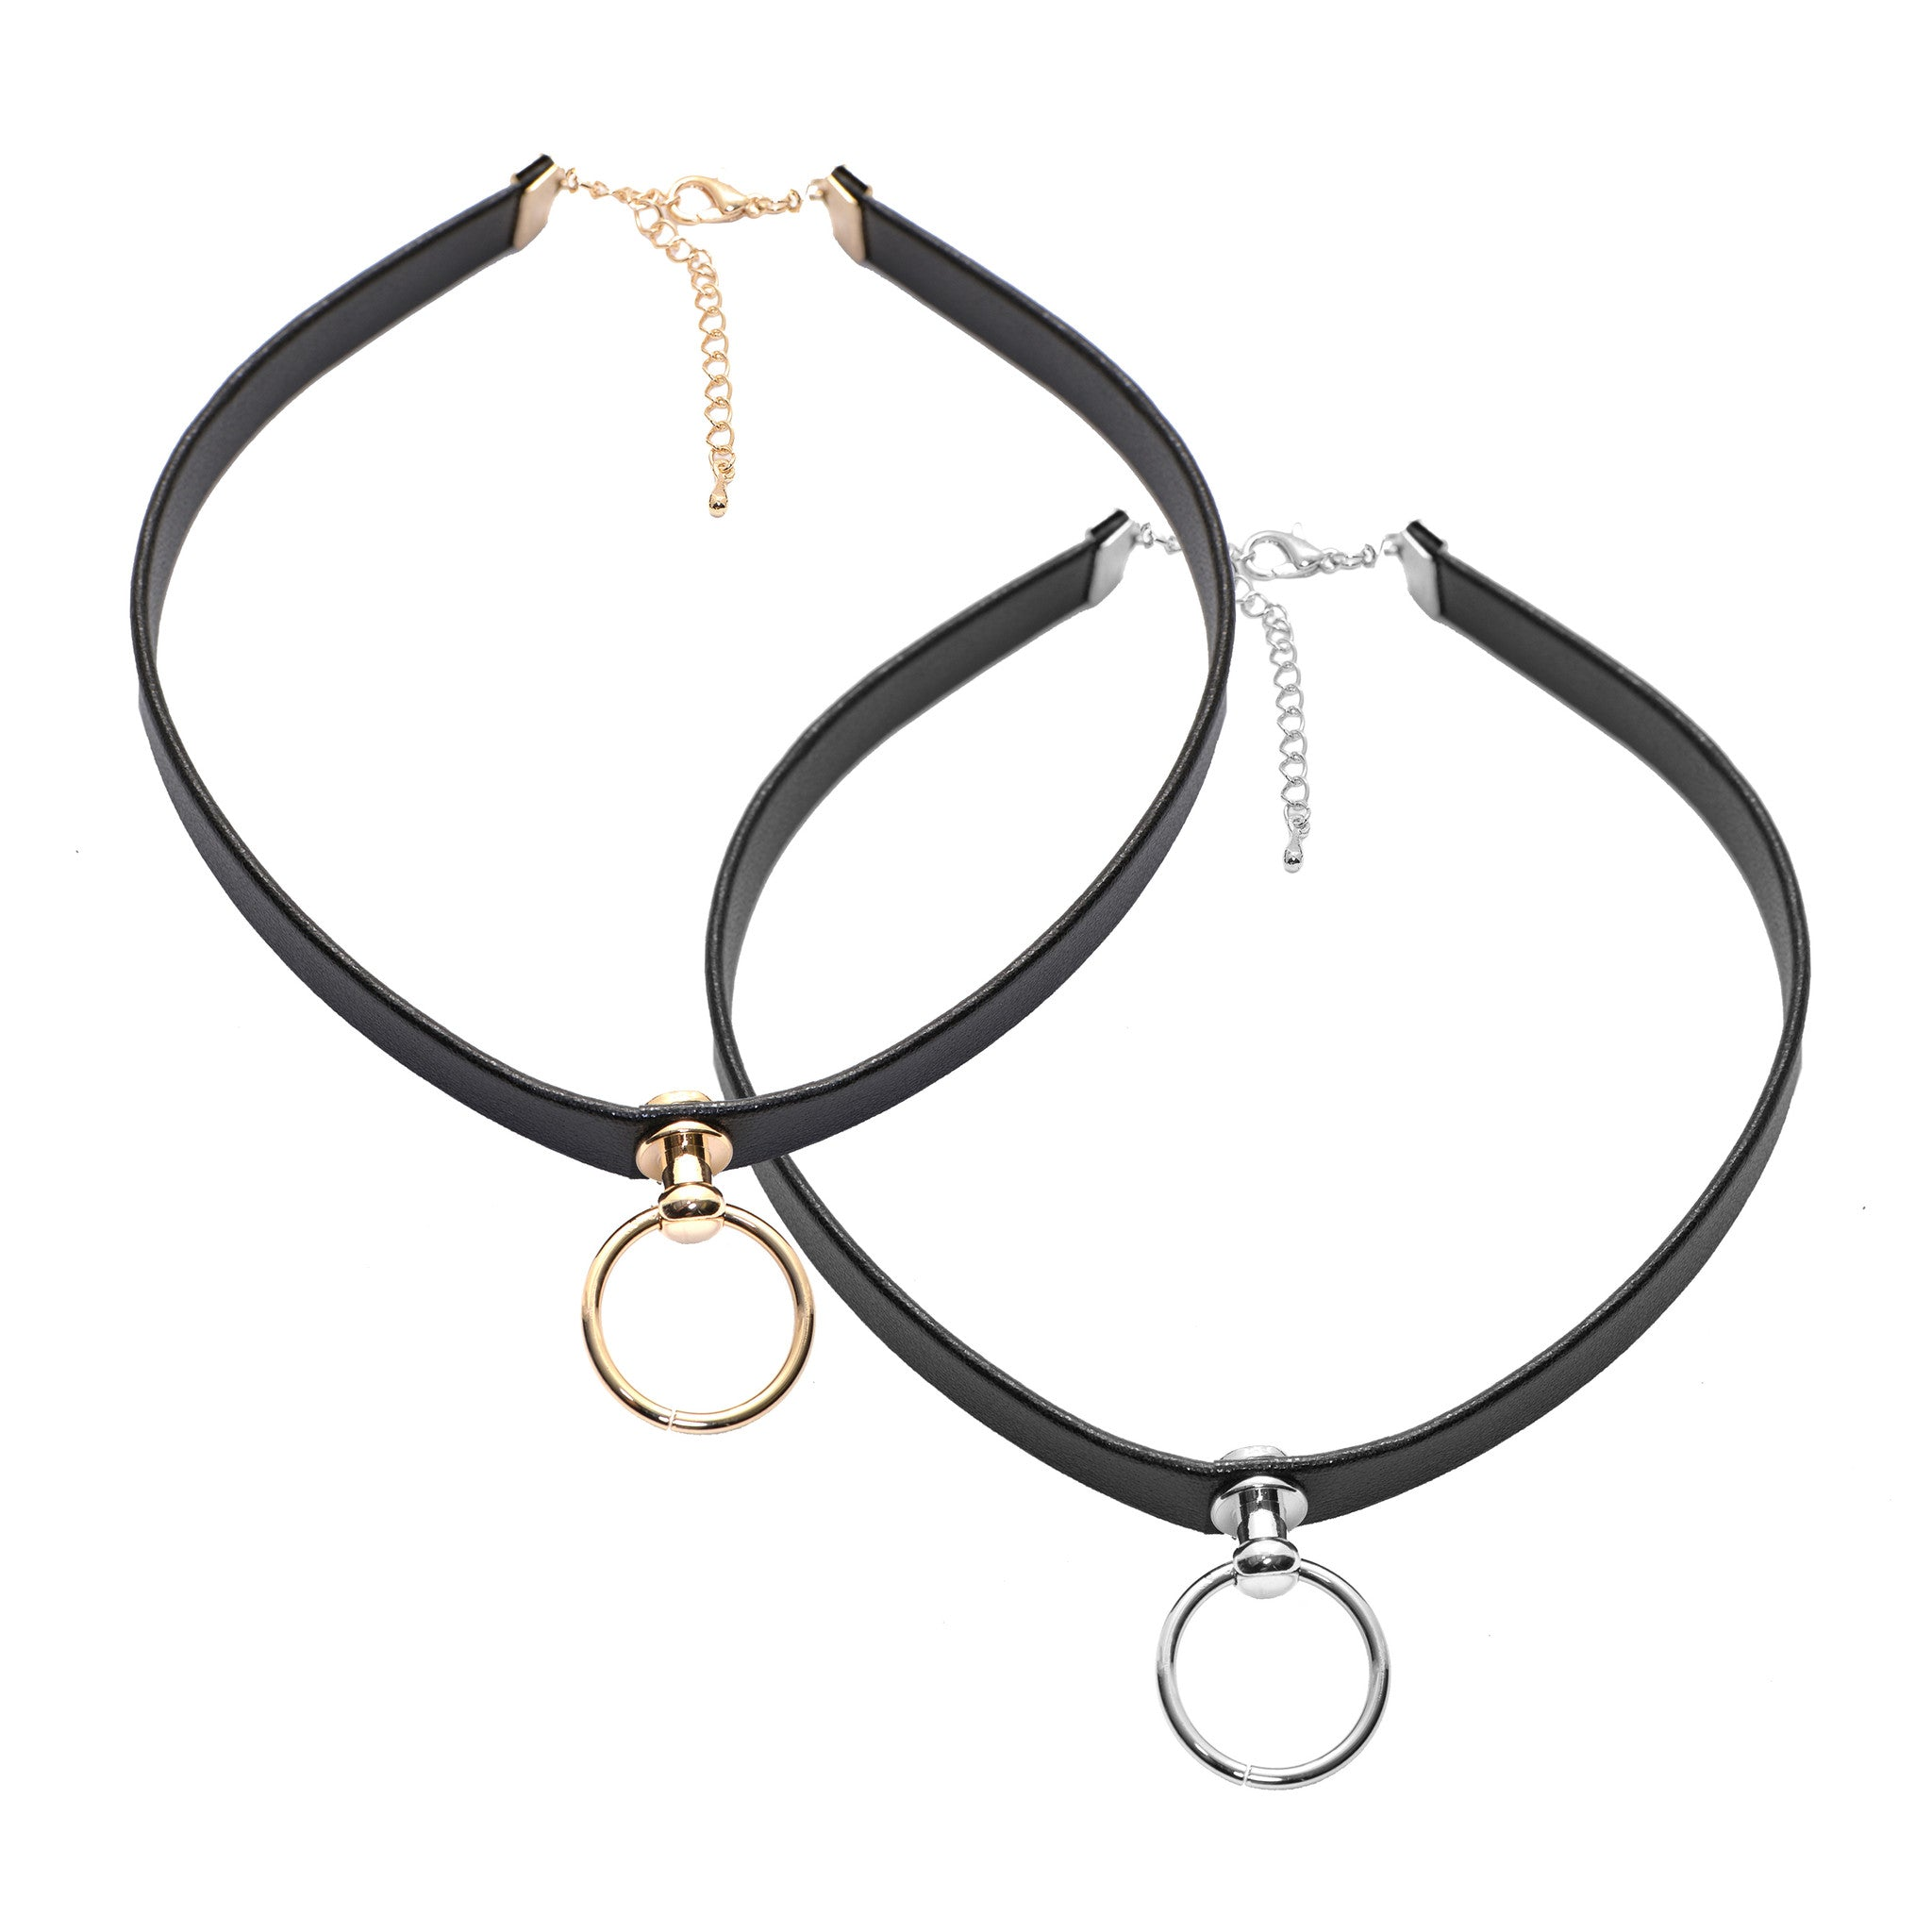 ad9f329f25a26 Slave to Love Collar Black Leather Choker Necklace